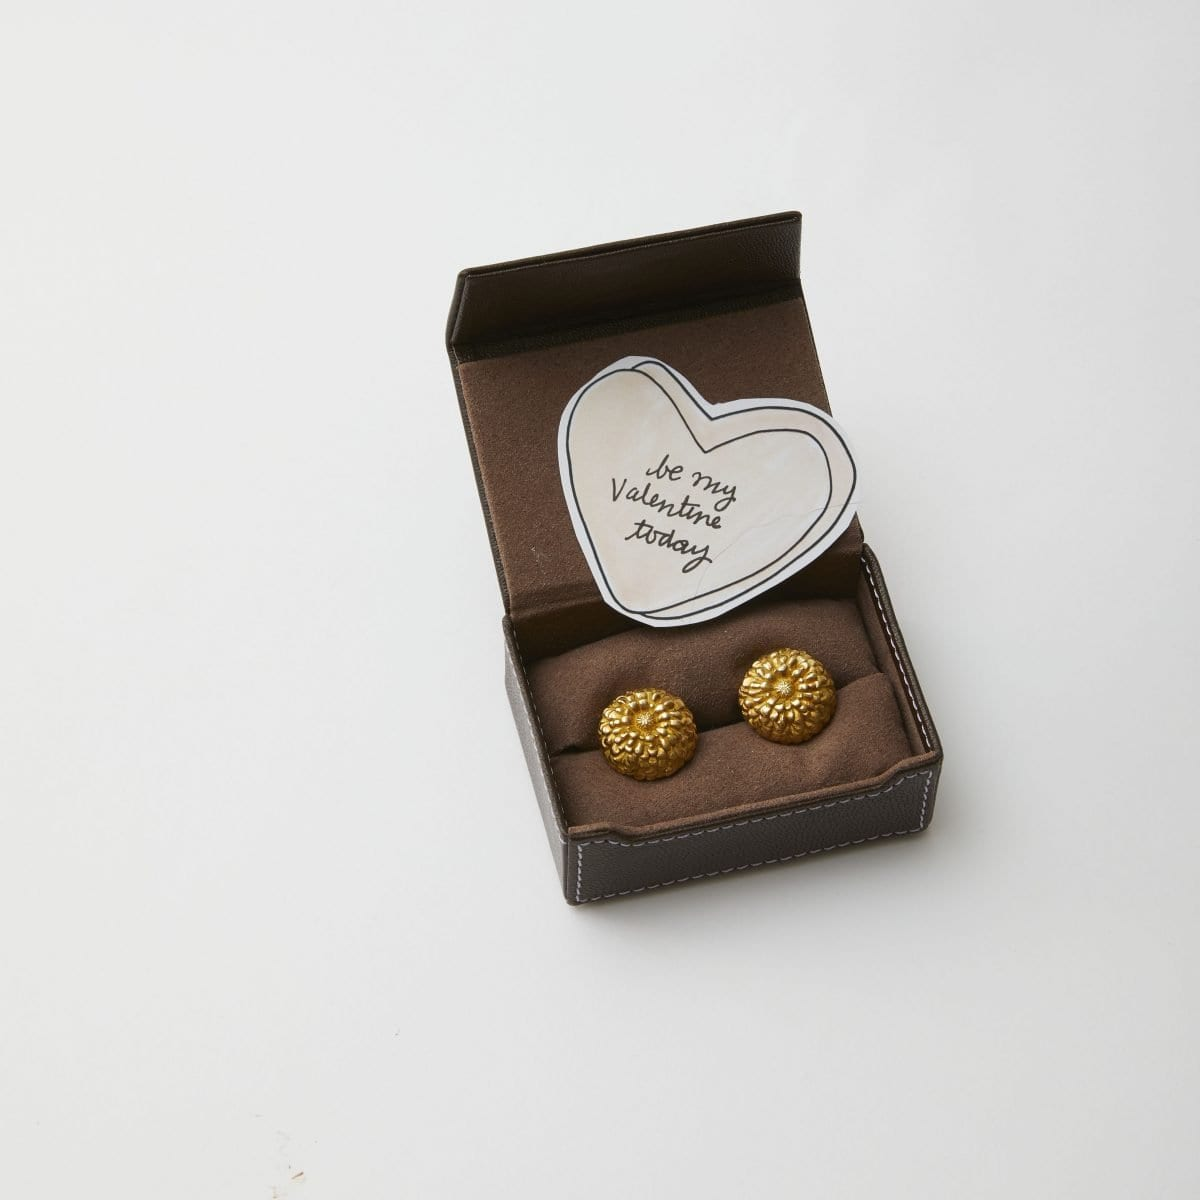 Darcy Miller Designs, Cufflinks with paper heart, Valentines, love note, conversation heart, paper heart, candy heart, gift, small gift, secret note, be my valentine, easy, Darcy Miller, DIY